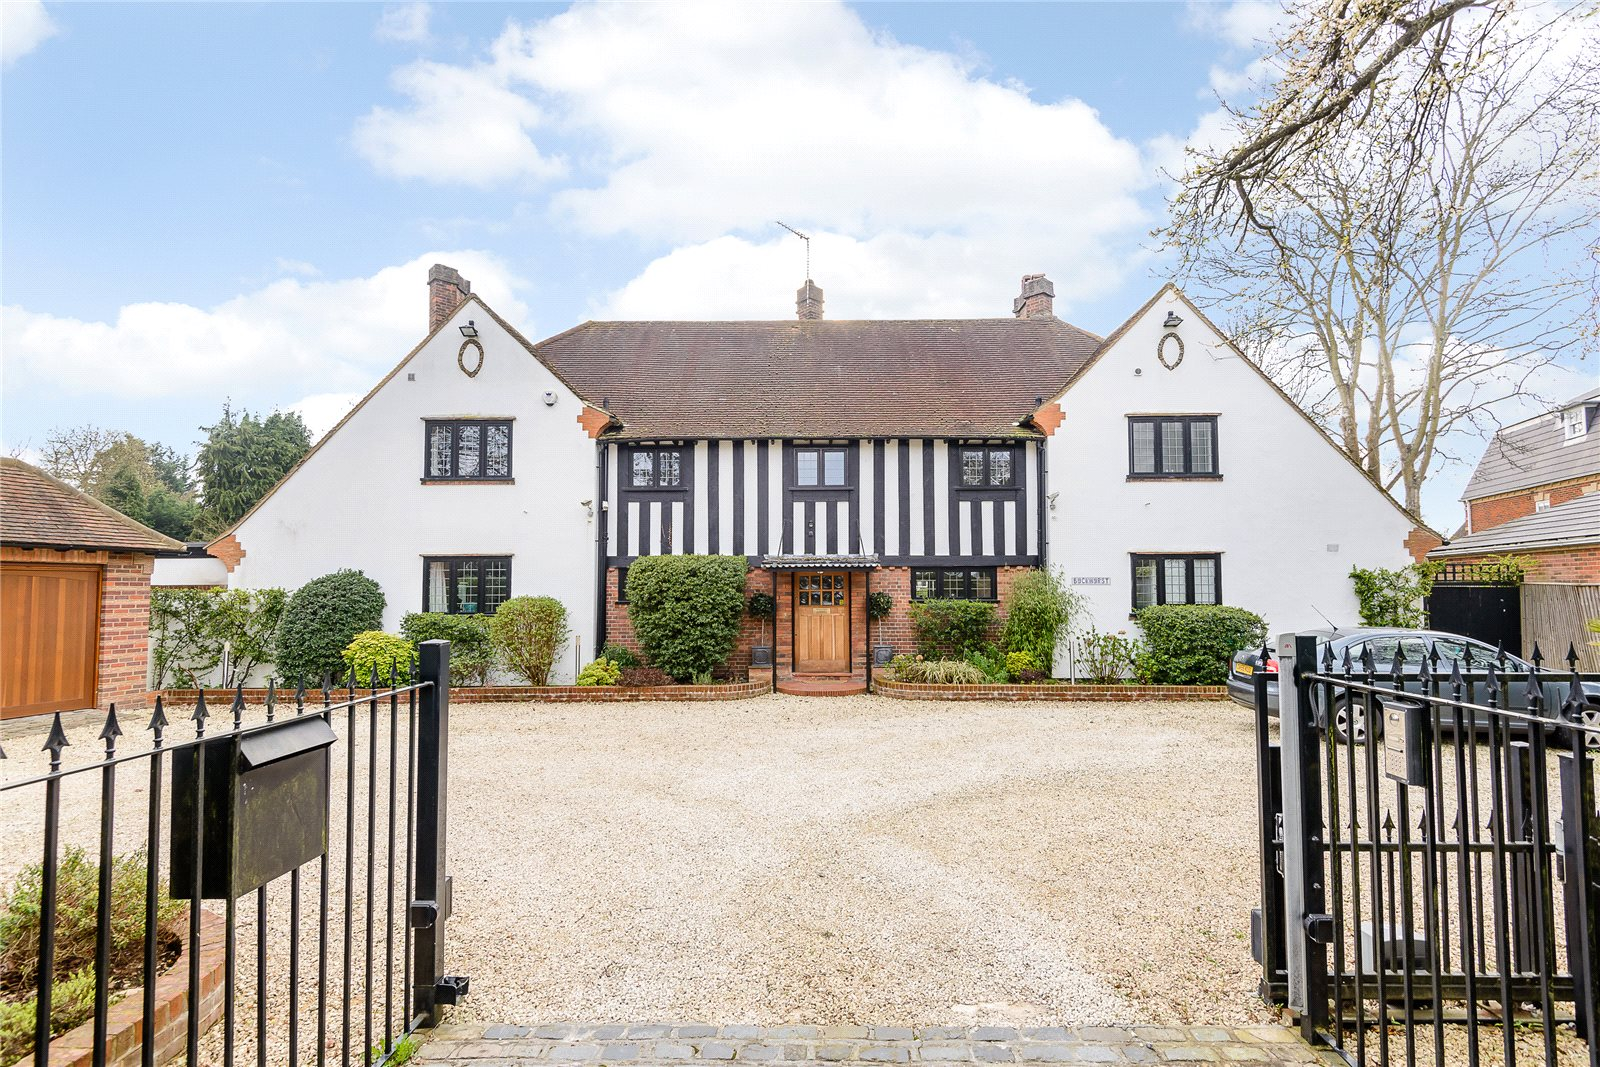 Single Family Home for Sale at Packhorse Road, Gerrards Cross, Buckinghamshire, SL9 Gerrards Cross, England